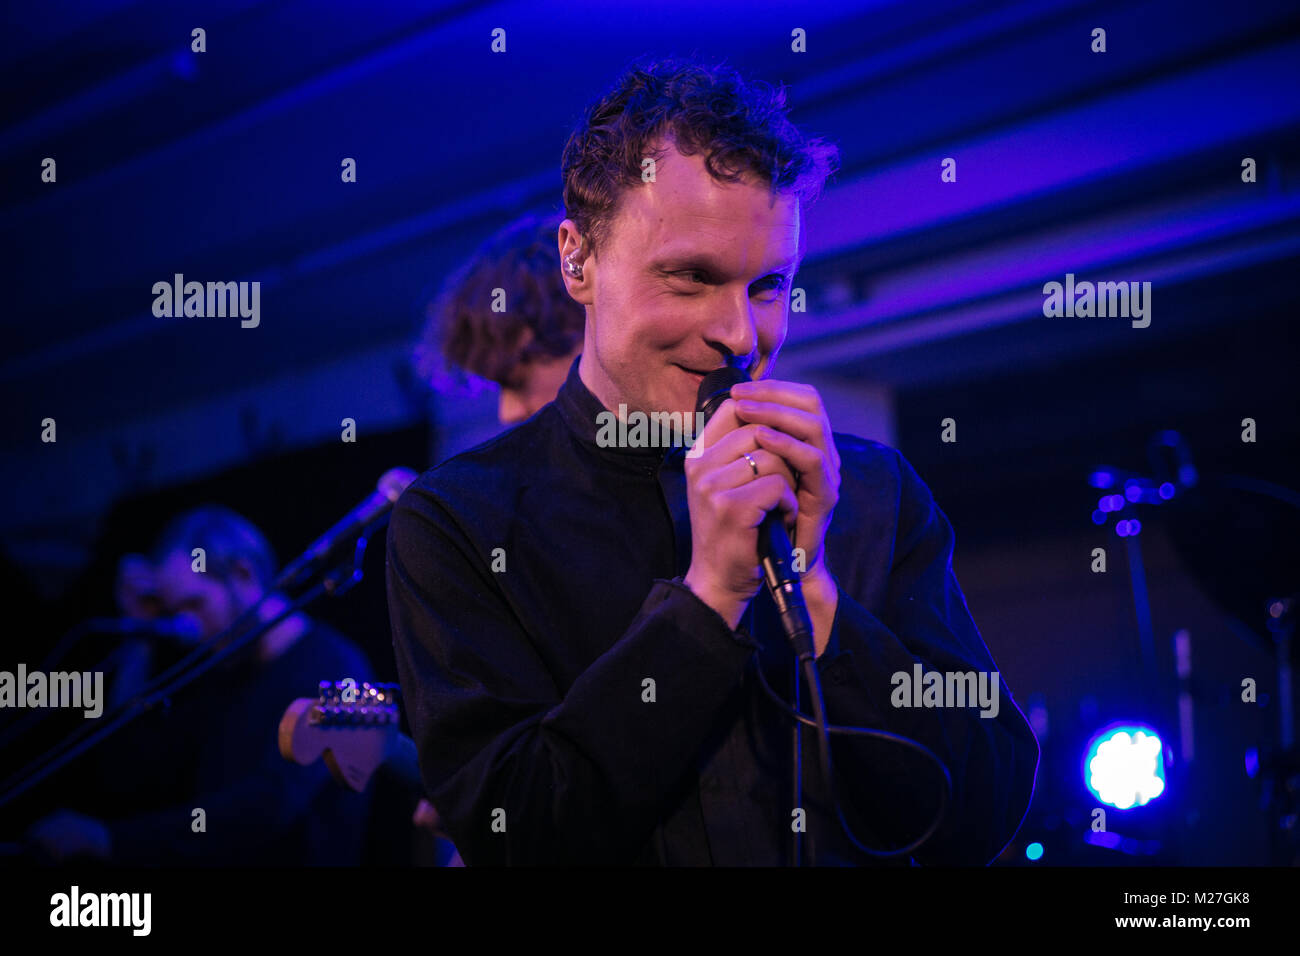 Norway, Trondheim - February 1, 2018. The Norwegian indie rock band Insomniac Bears performs a live concert during - Stock Image